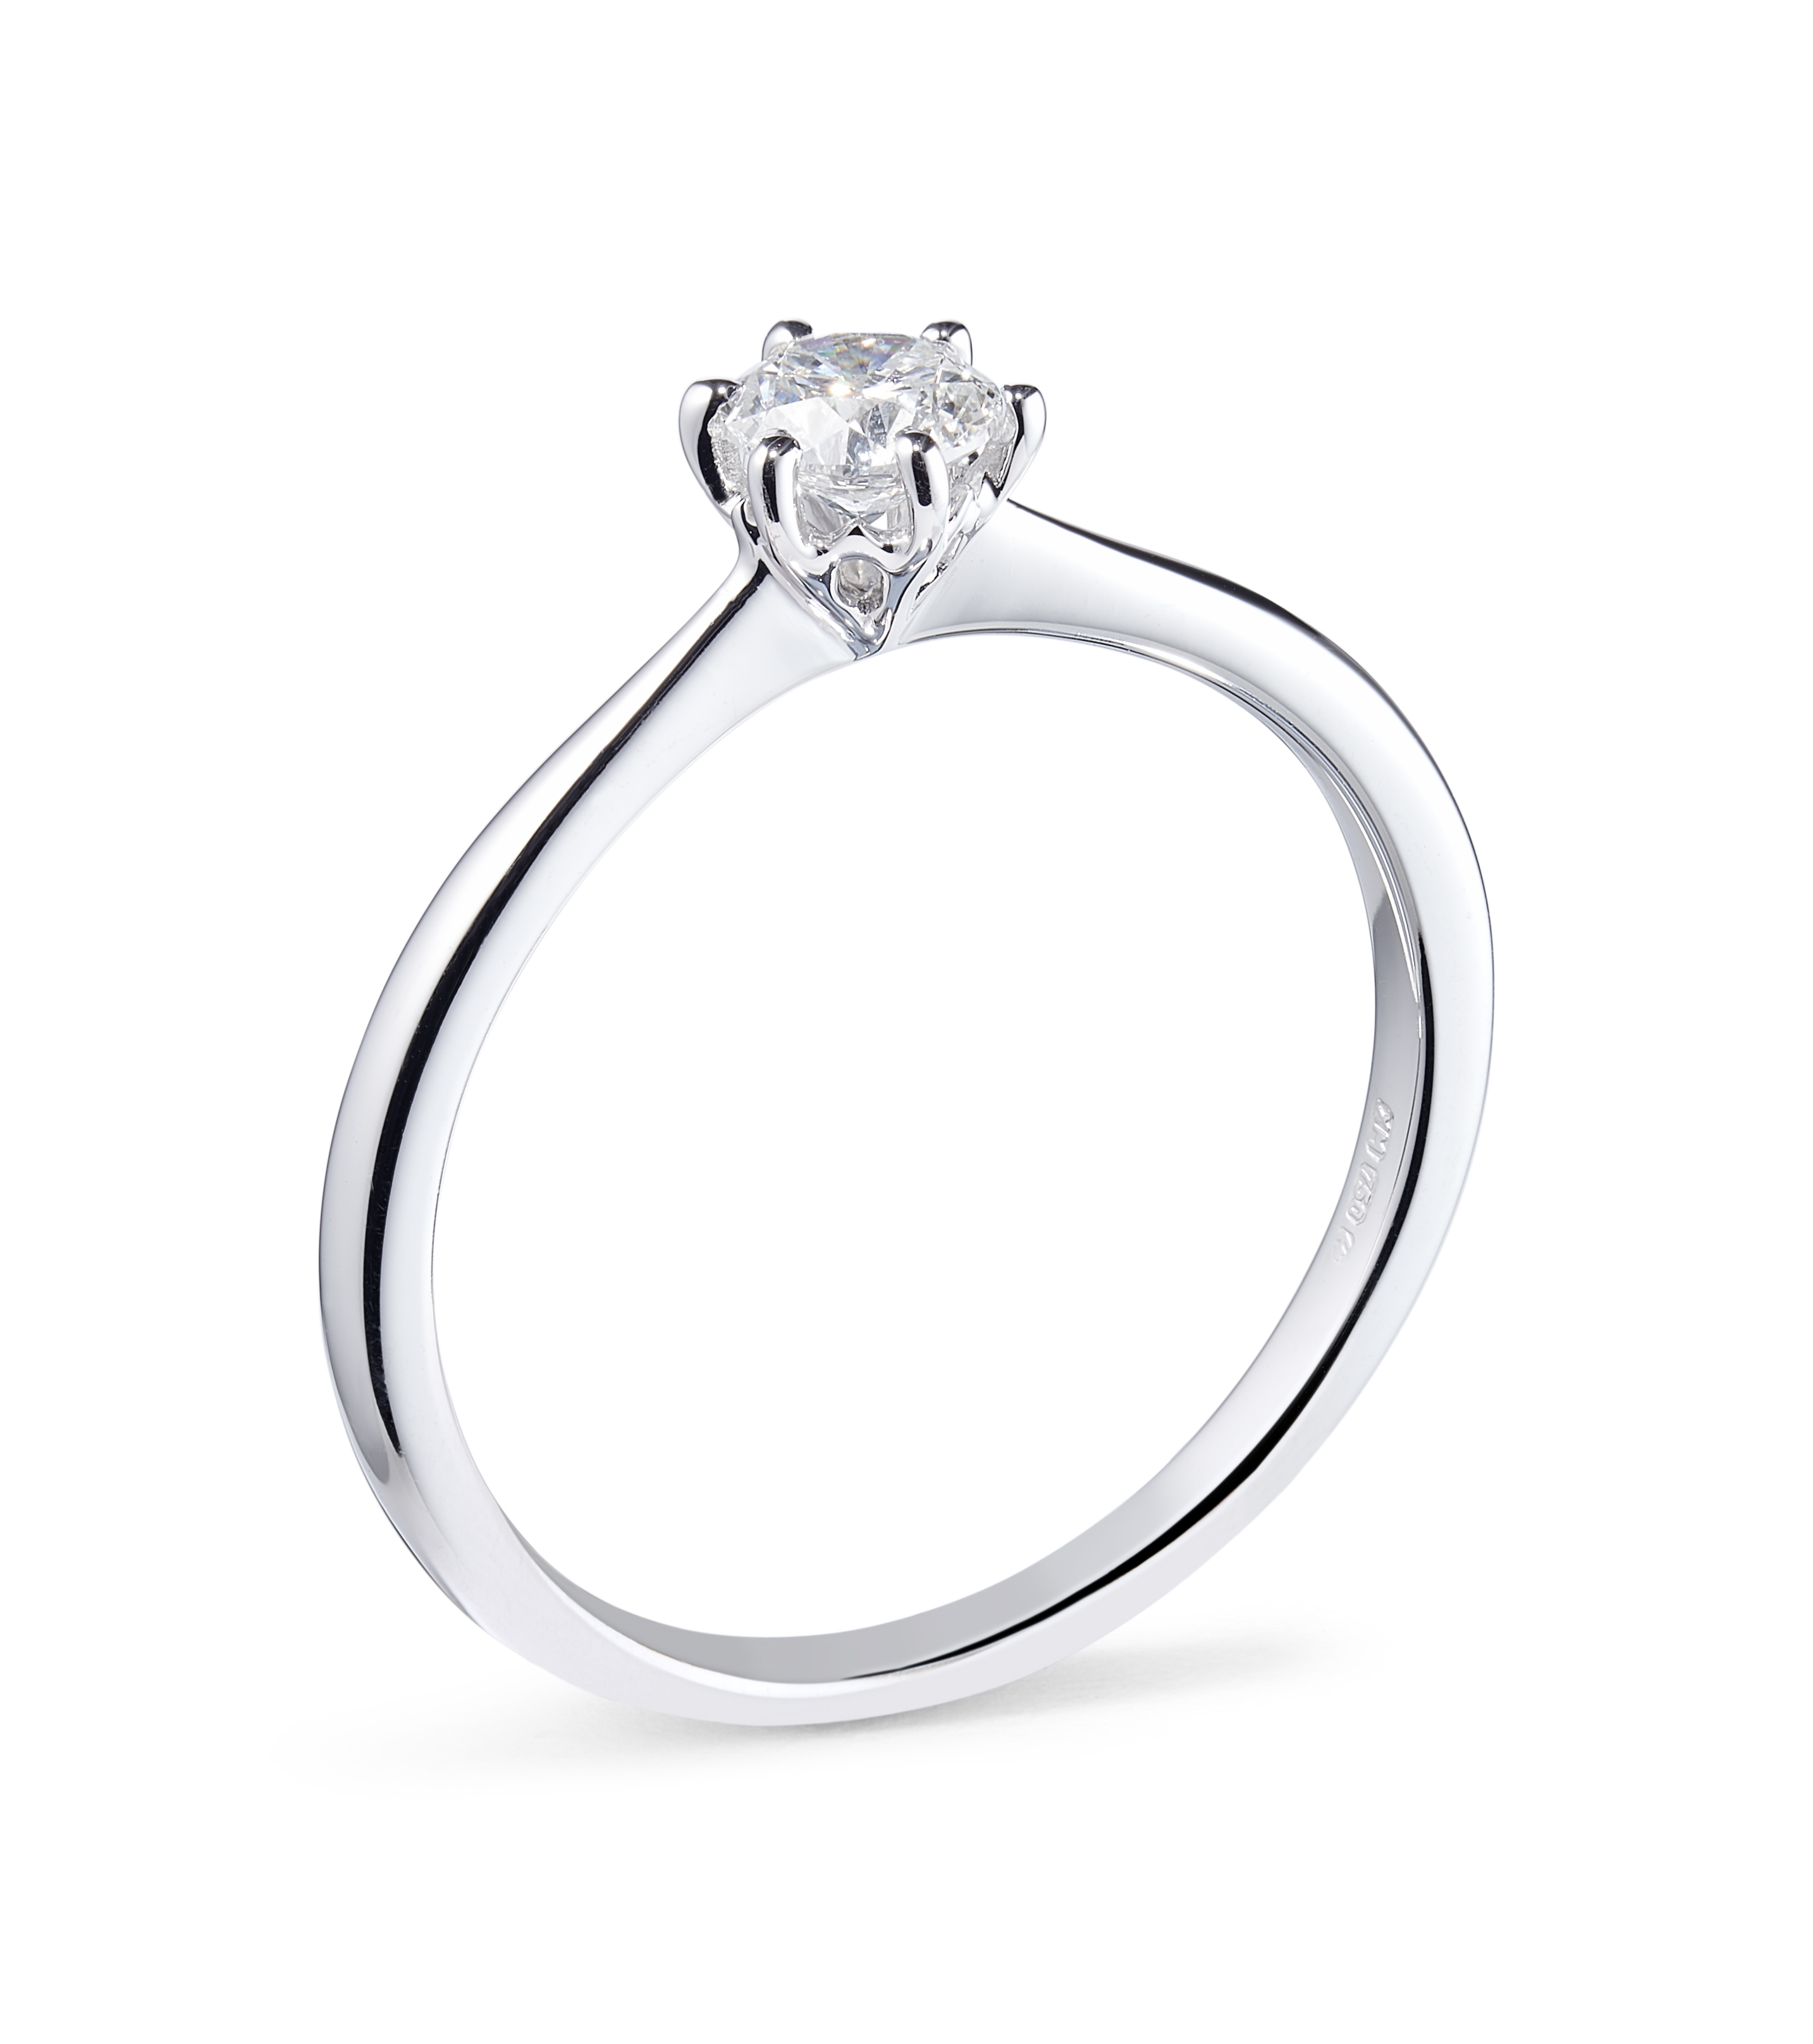 0.24ct Six Claw Solitaire Ring in 18ct White Gold